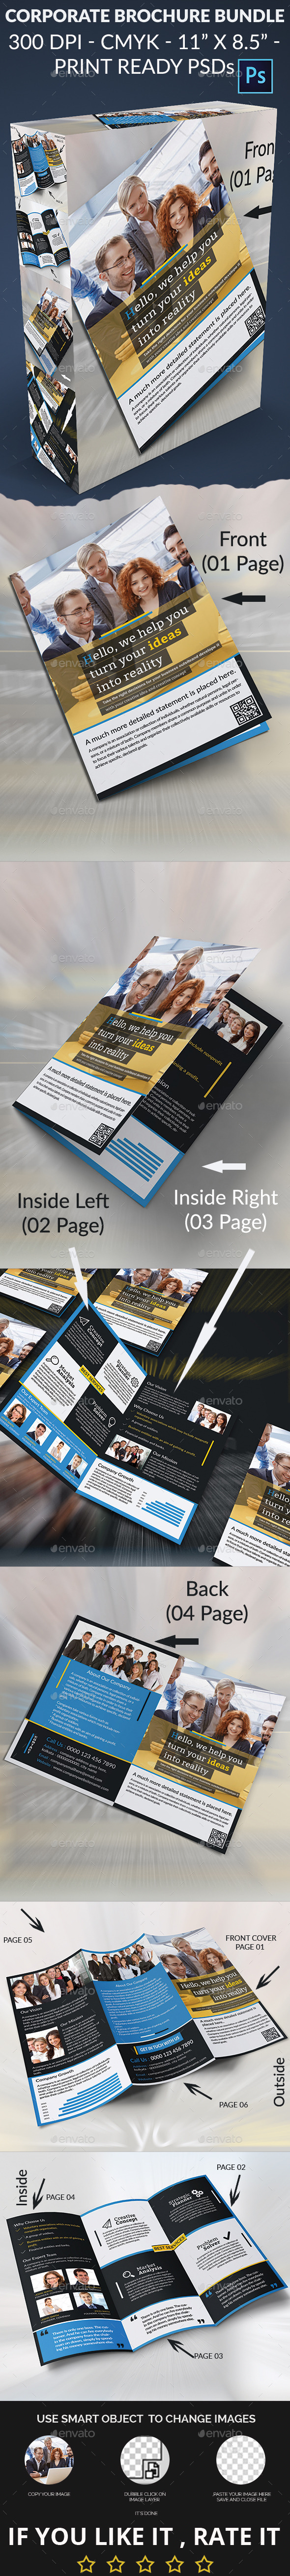 Corporate Brochure Bundle - Corporate Brochures